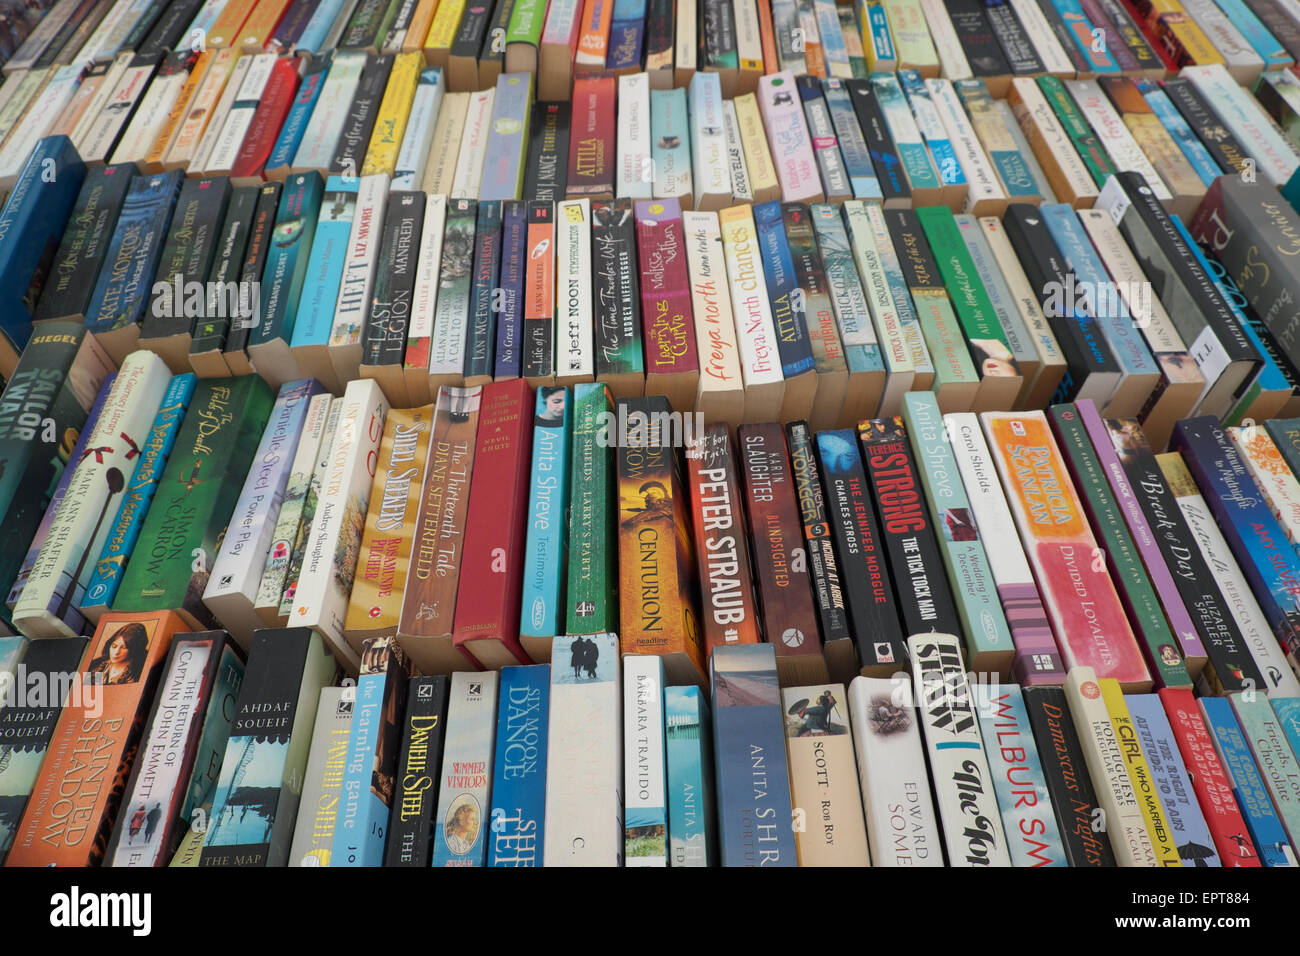 Secondhand paperback books for sale in Hay on Wye Powys Wales UK - Stock Image